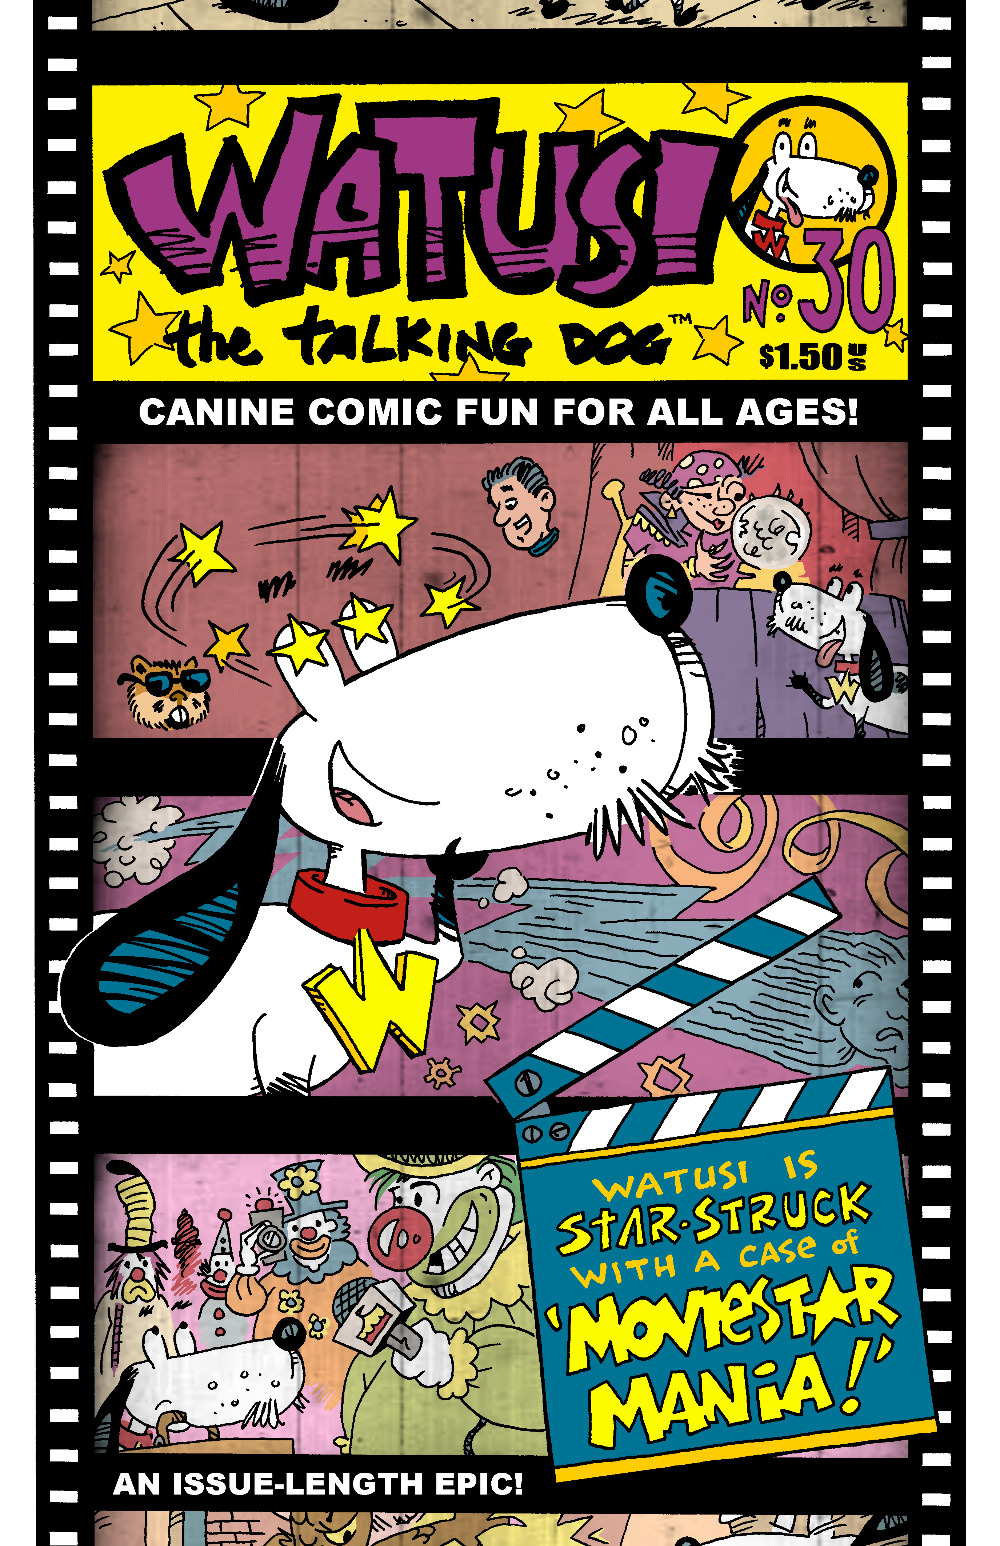 Watusi the Talking Dog #30 [.pdf ed.]